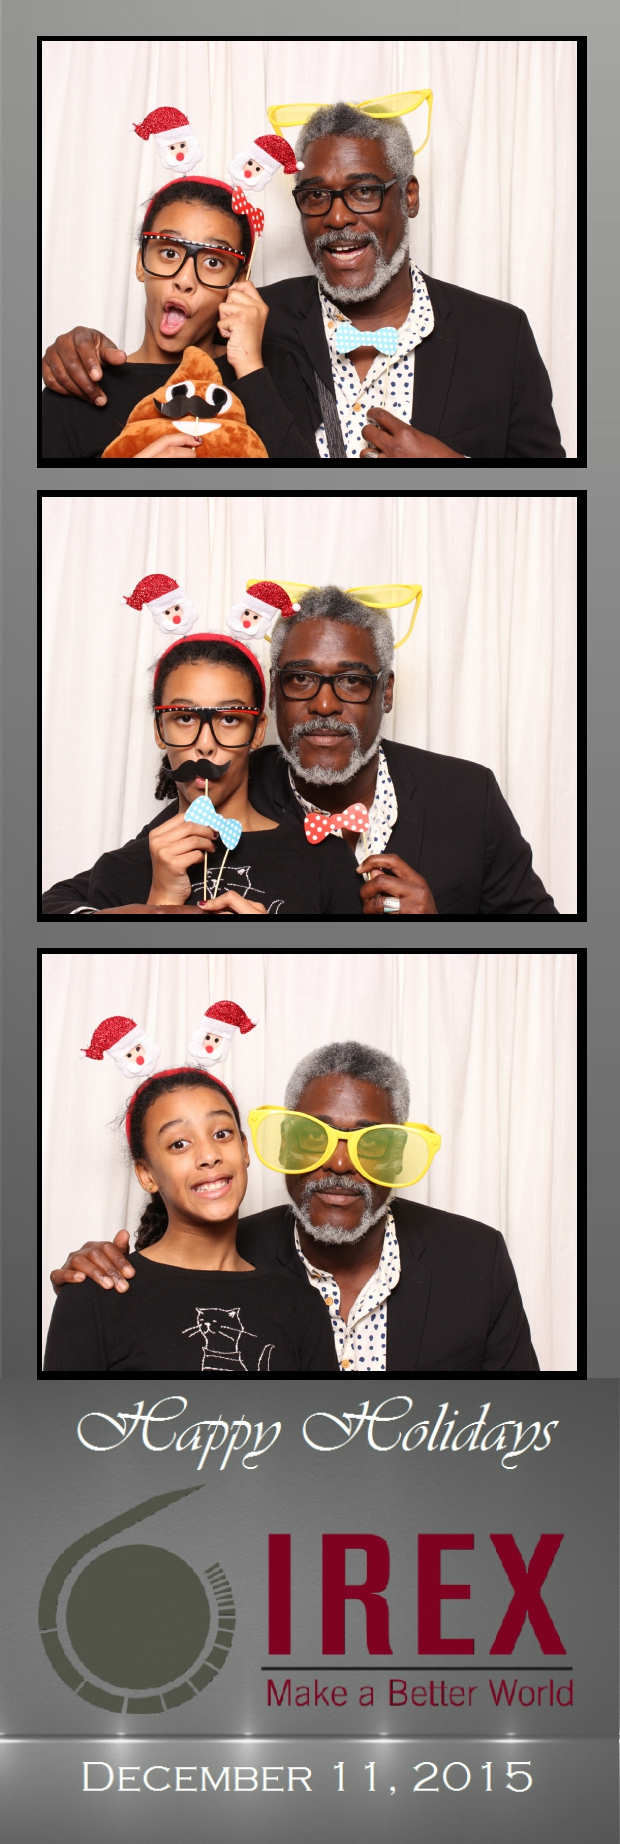 Guest House Events Photo Booth Strips IREX (59).jpg